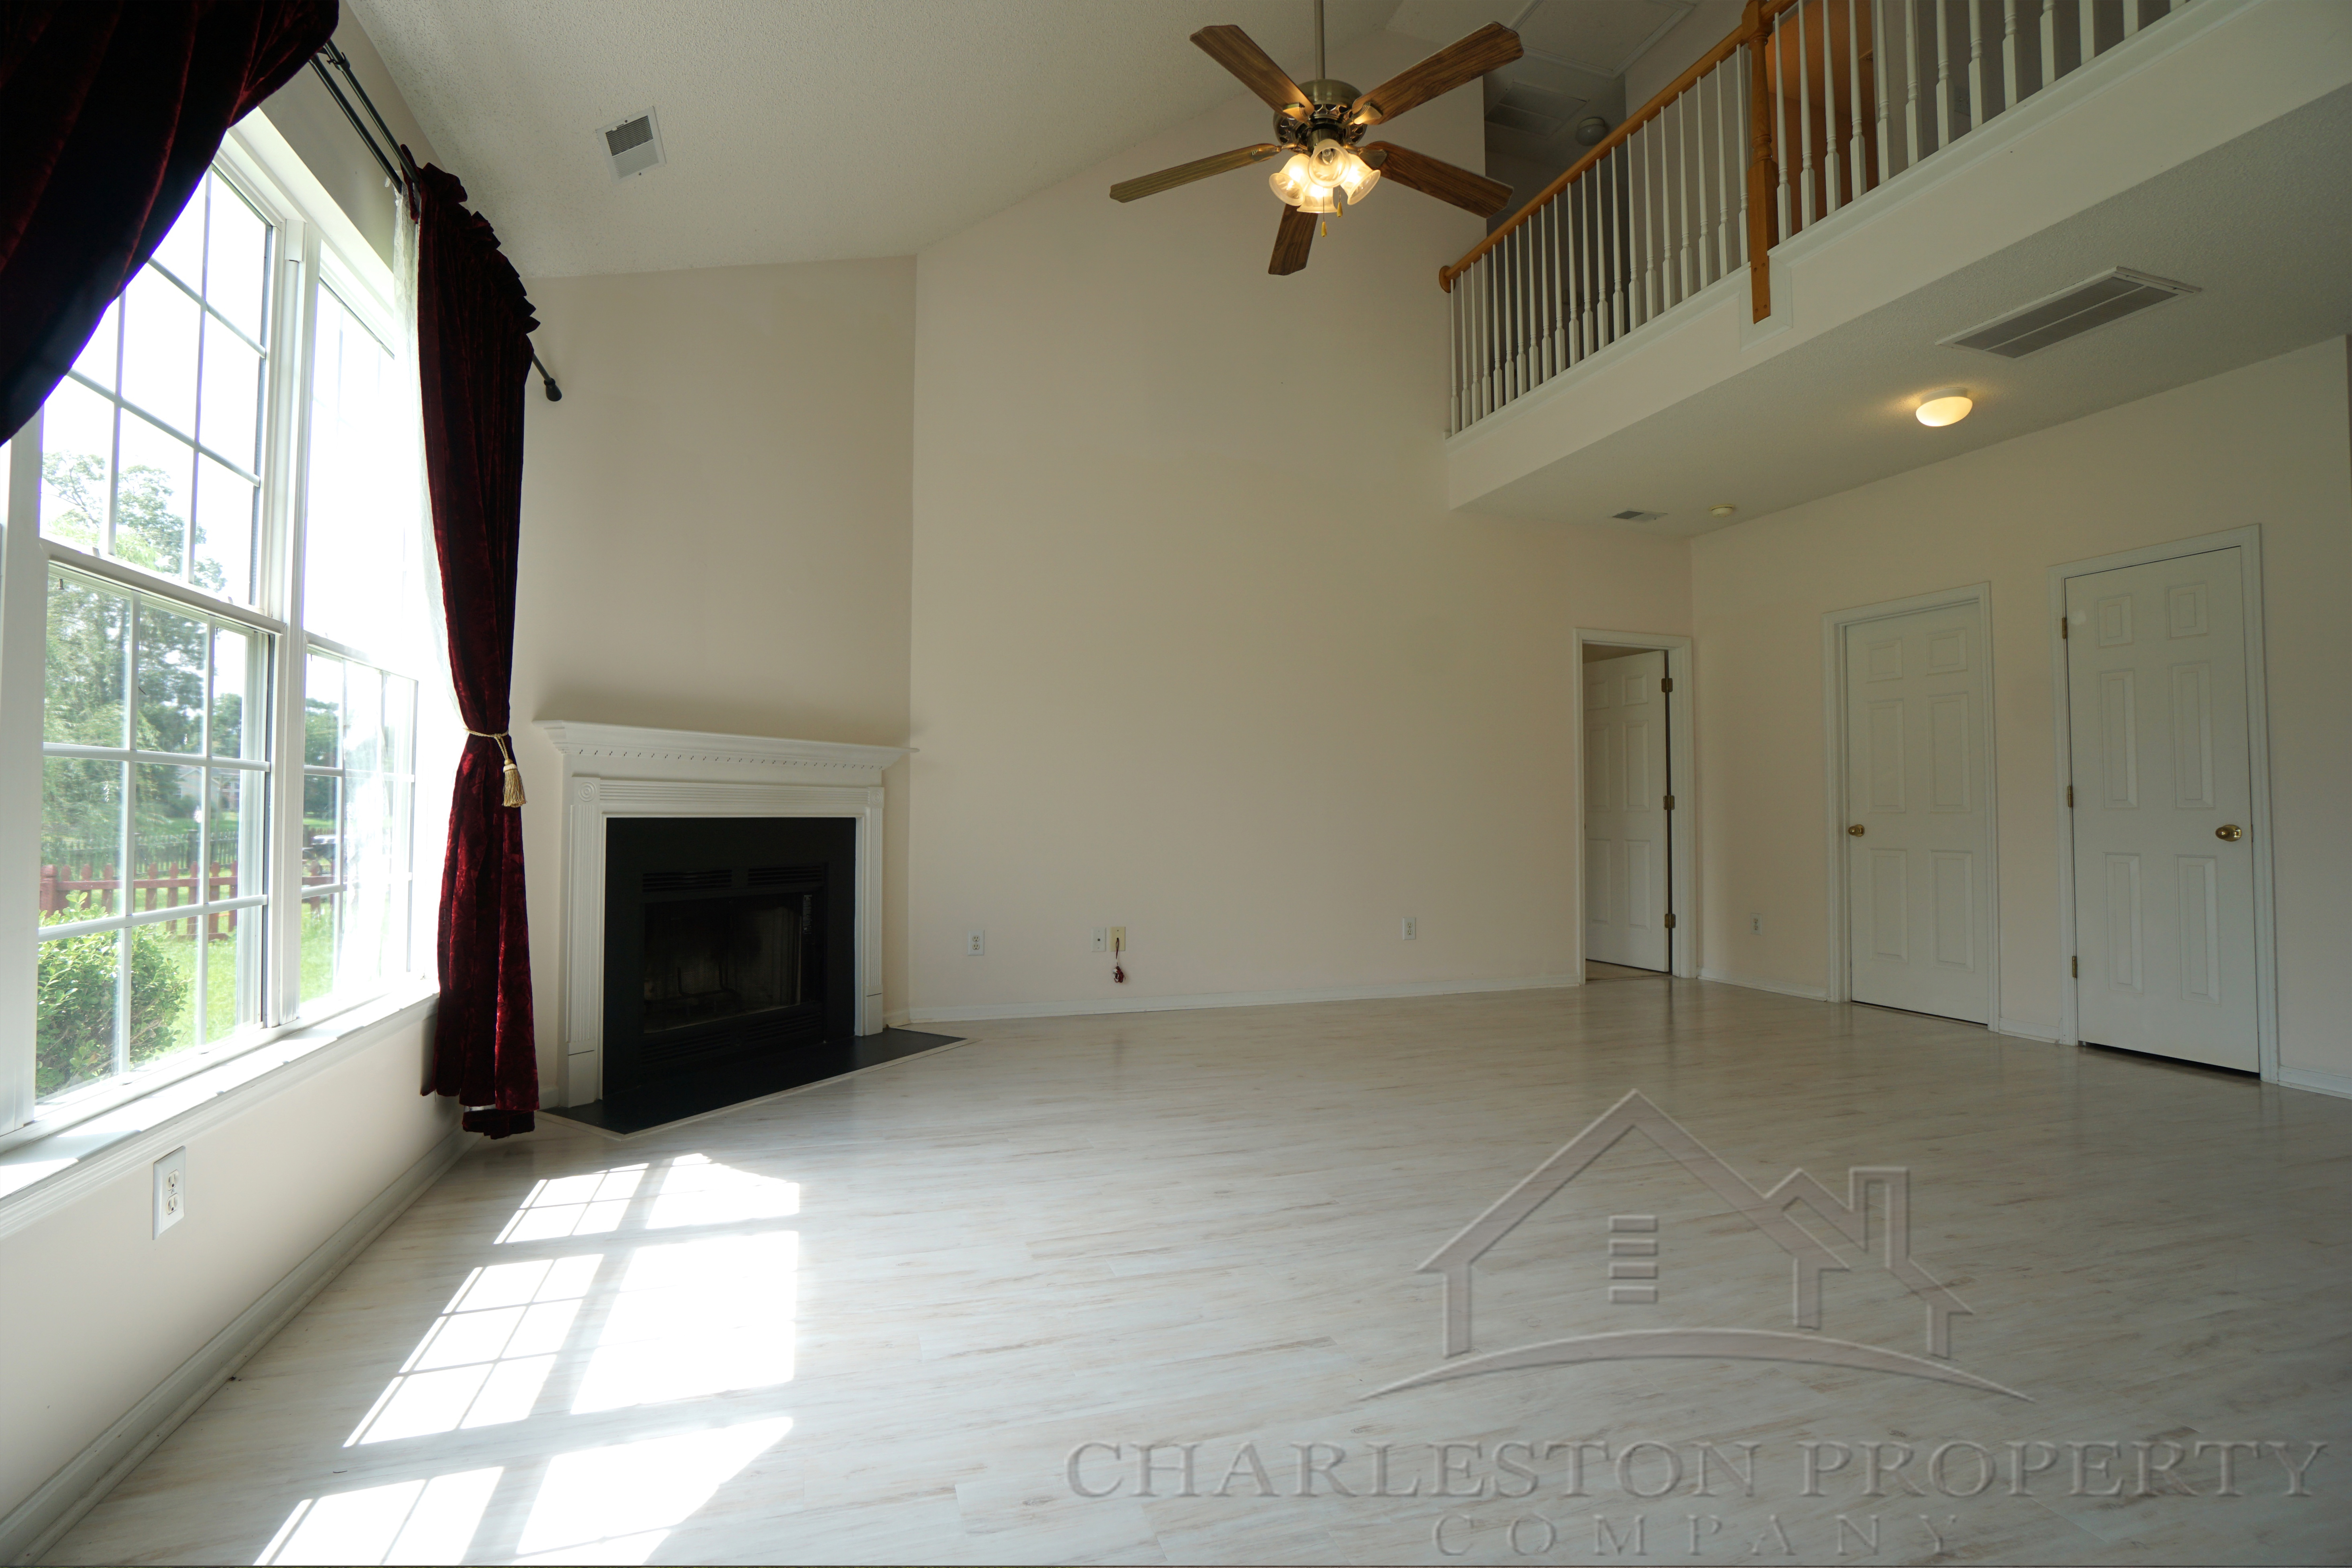 533 Tribeca Dr Charleston SC 29414-9042 - Photo 4